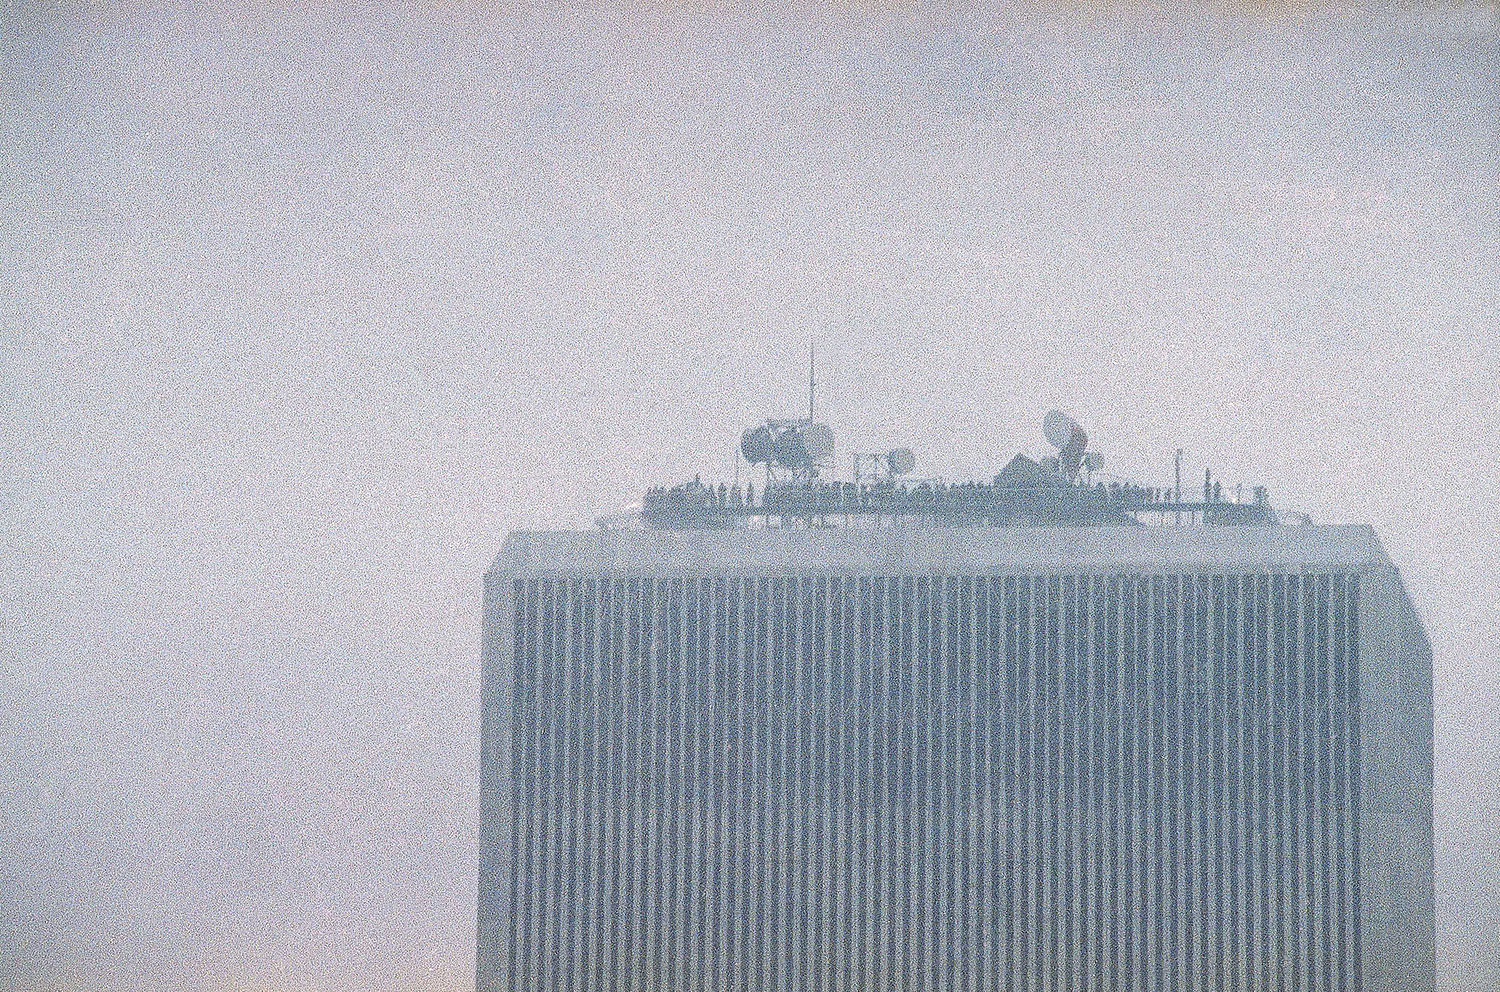 <div class='meta'><div class='origin-logo' data-origin='AP'></div><span class='caption-text' data-credit='AP Photo/Val Mazzucca'>People line the observation deck of the World Trade Center in New York, Feb. 26, 1993.</span></div>